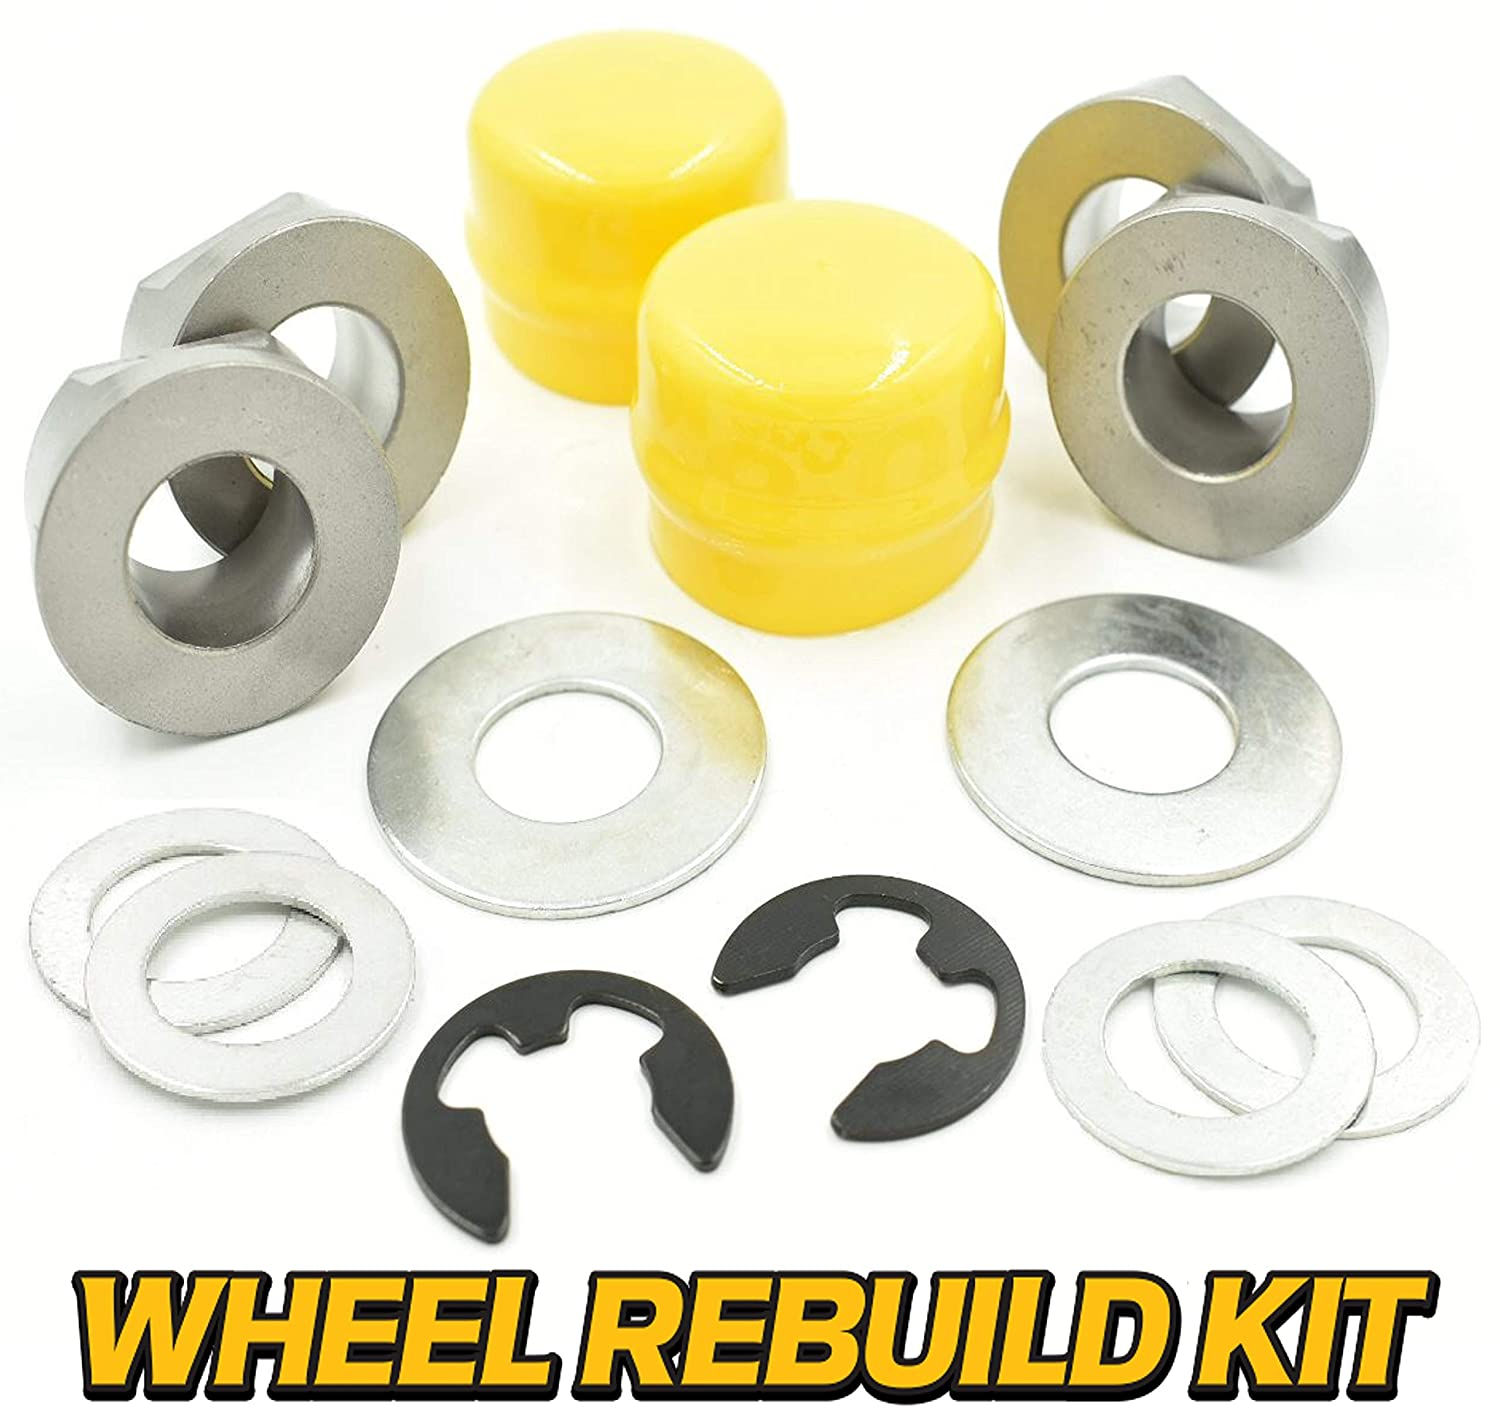 HD Switch Front Wheel Bushing Kit Replaces John Deere L100 L105 L108 L110 L120 L130 - LA100 L105 LA115 LA125 LA130 LA135 LA140 LA145 LA150 LA155 LA165 LA175 - D100 D105 D110 D120 D130 D140 D150 D160